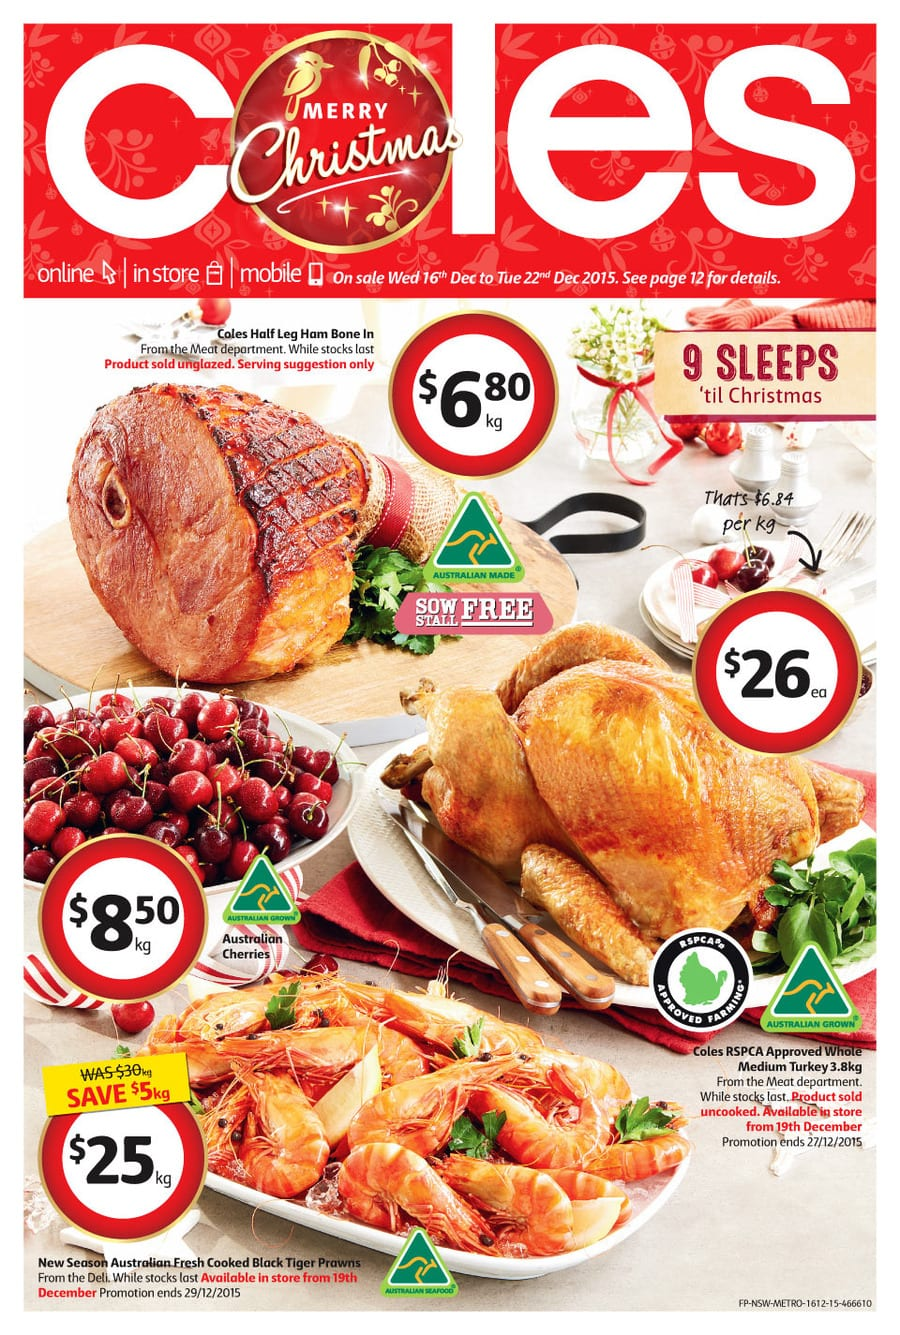 coles christmas food catalogue 16 22 dec 2015 - Coles Christmas Decorations